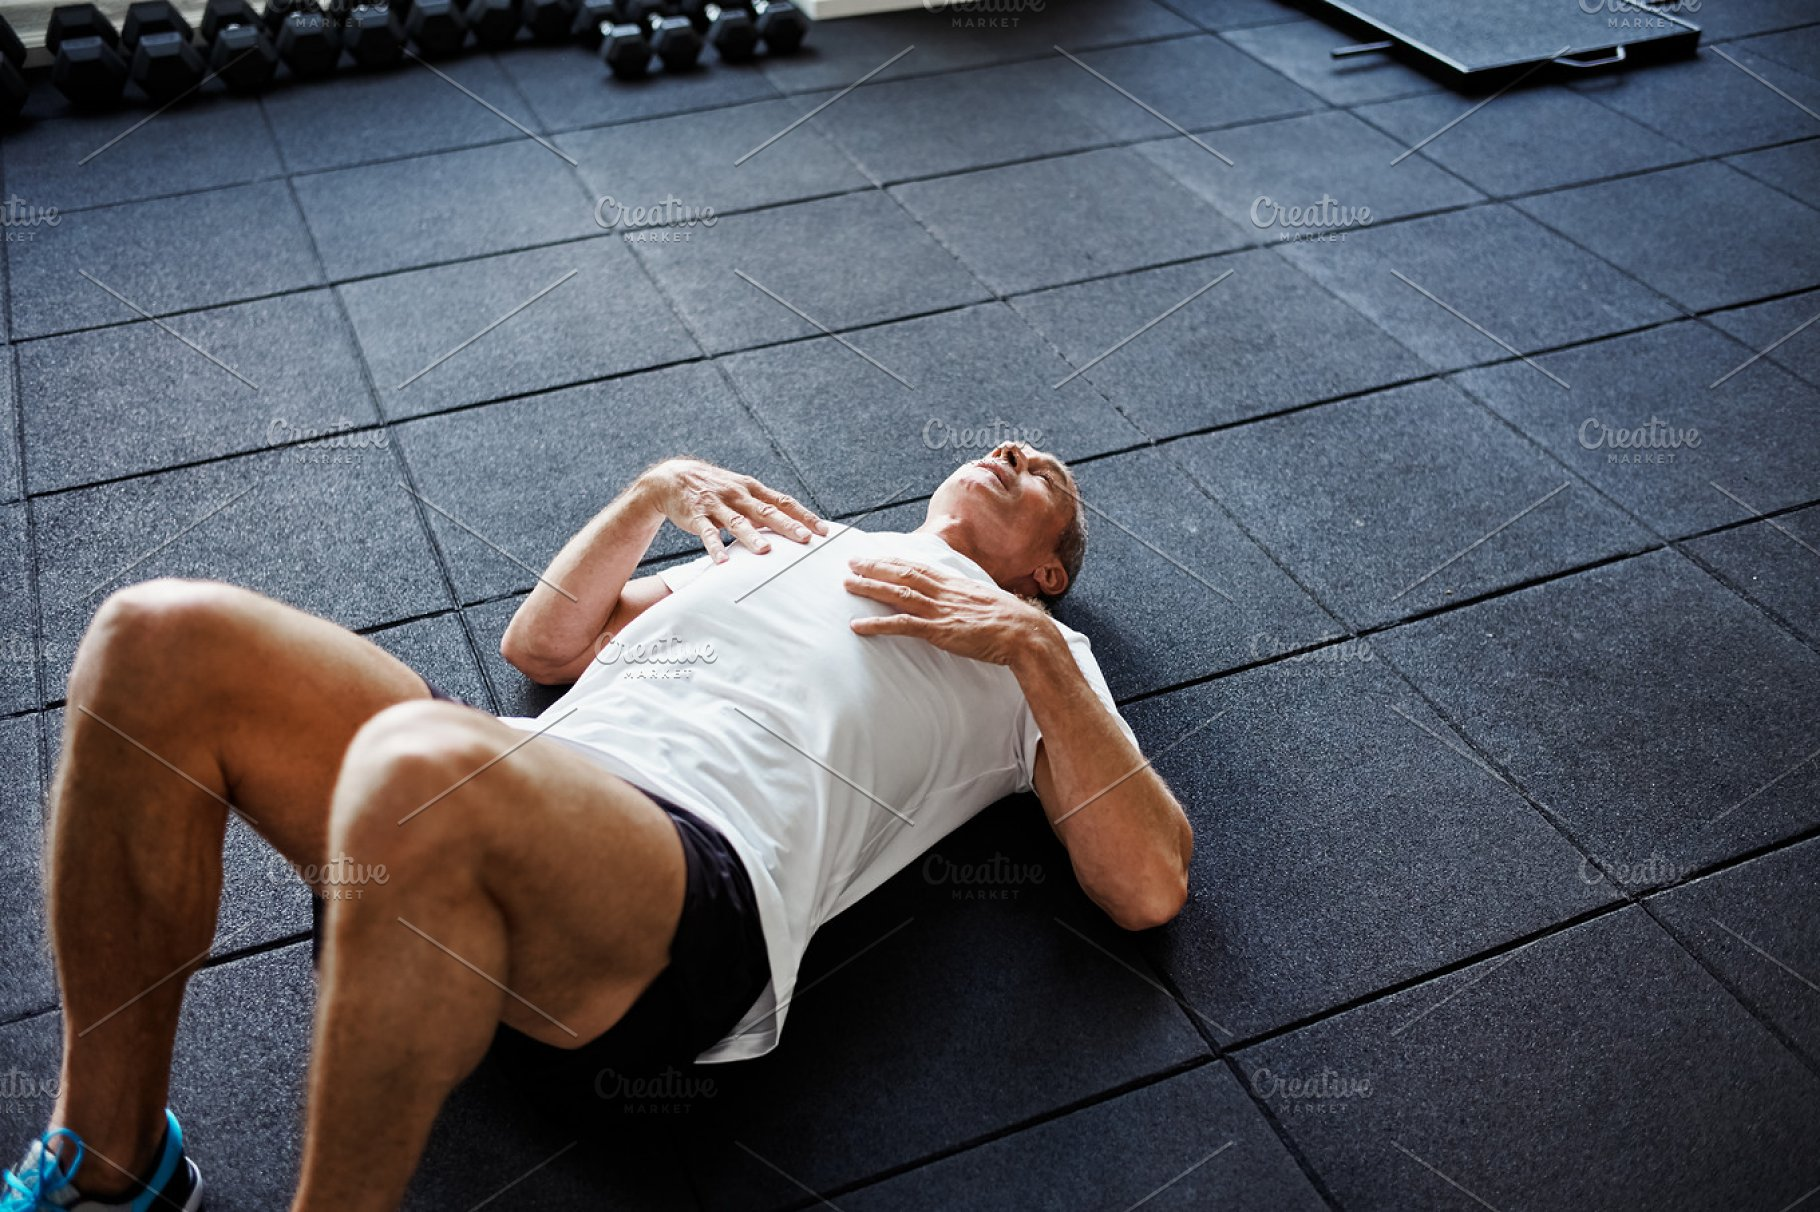 Exhausted man lying on a gym floor